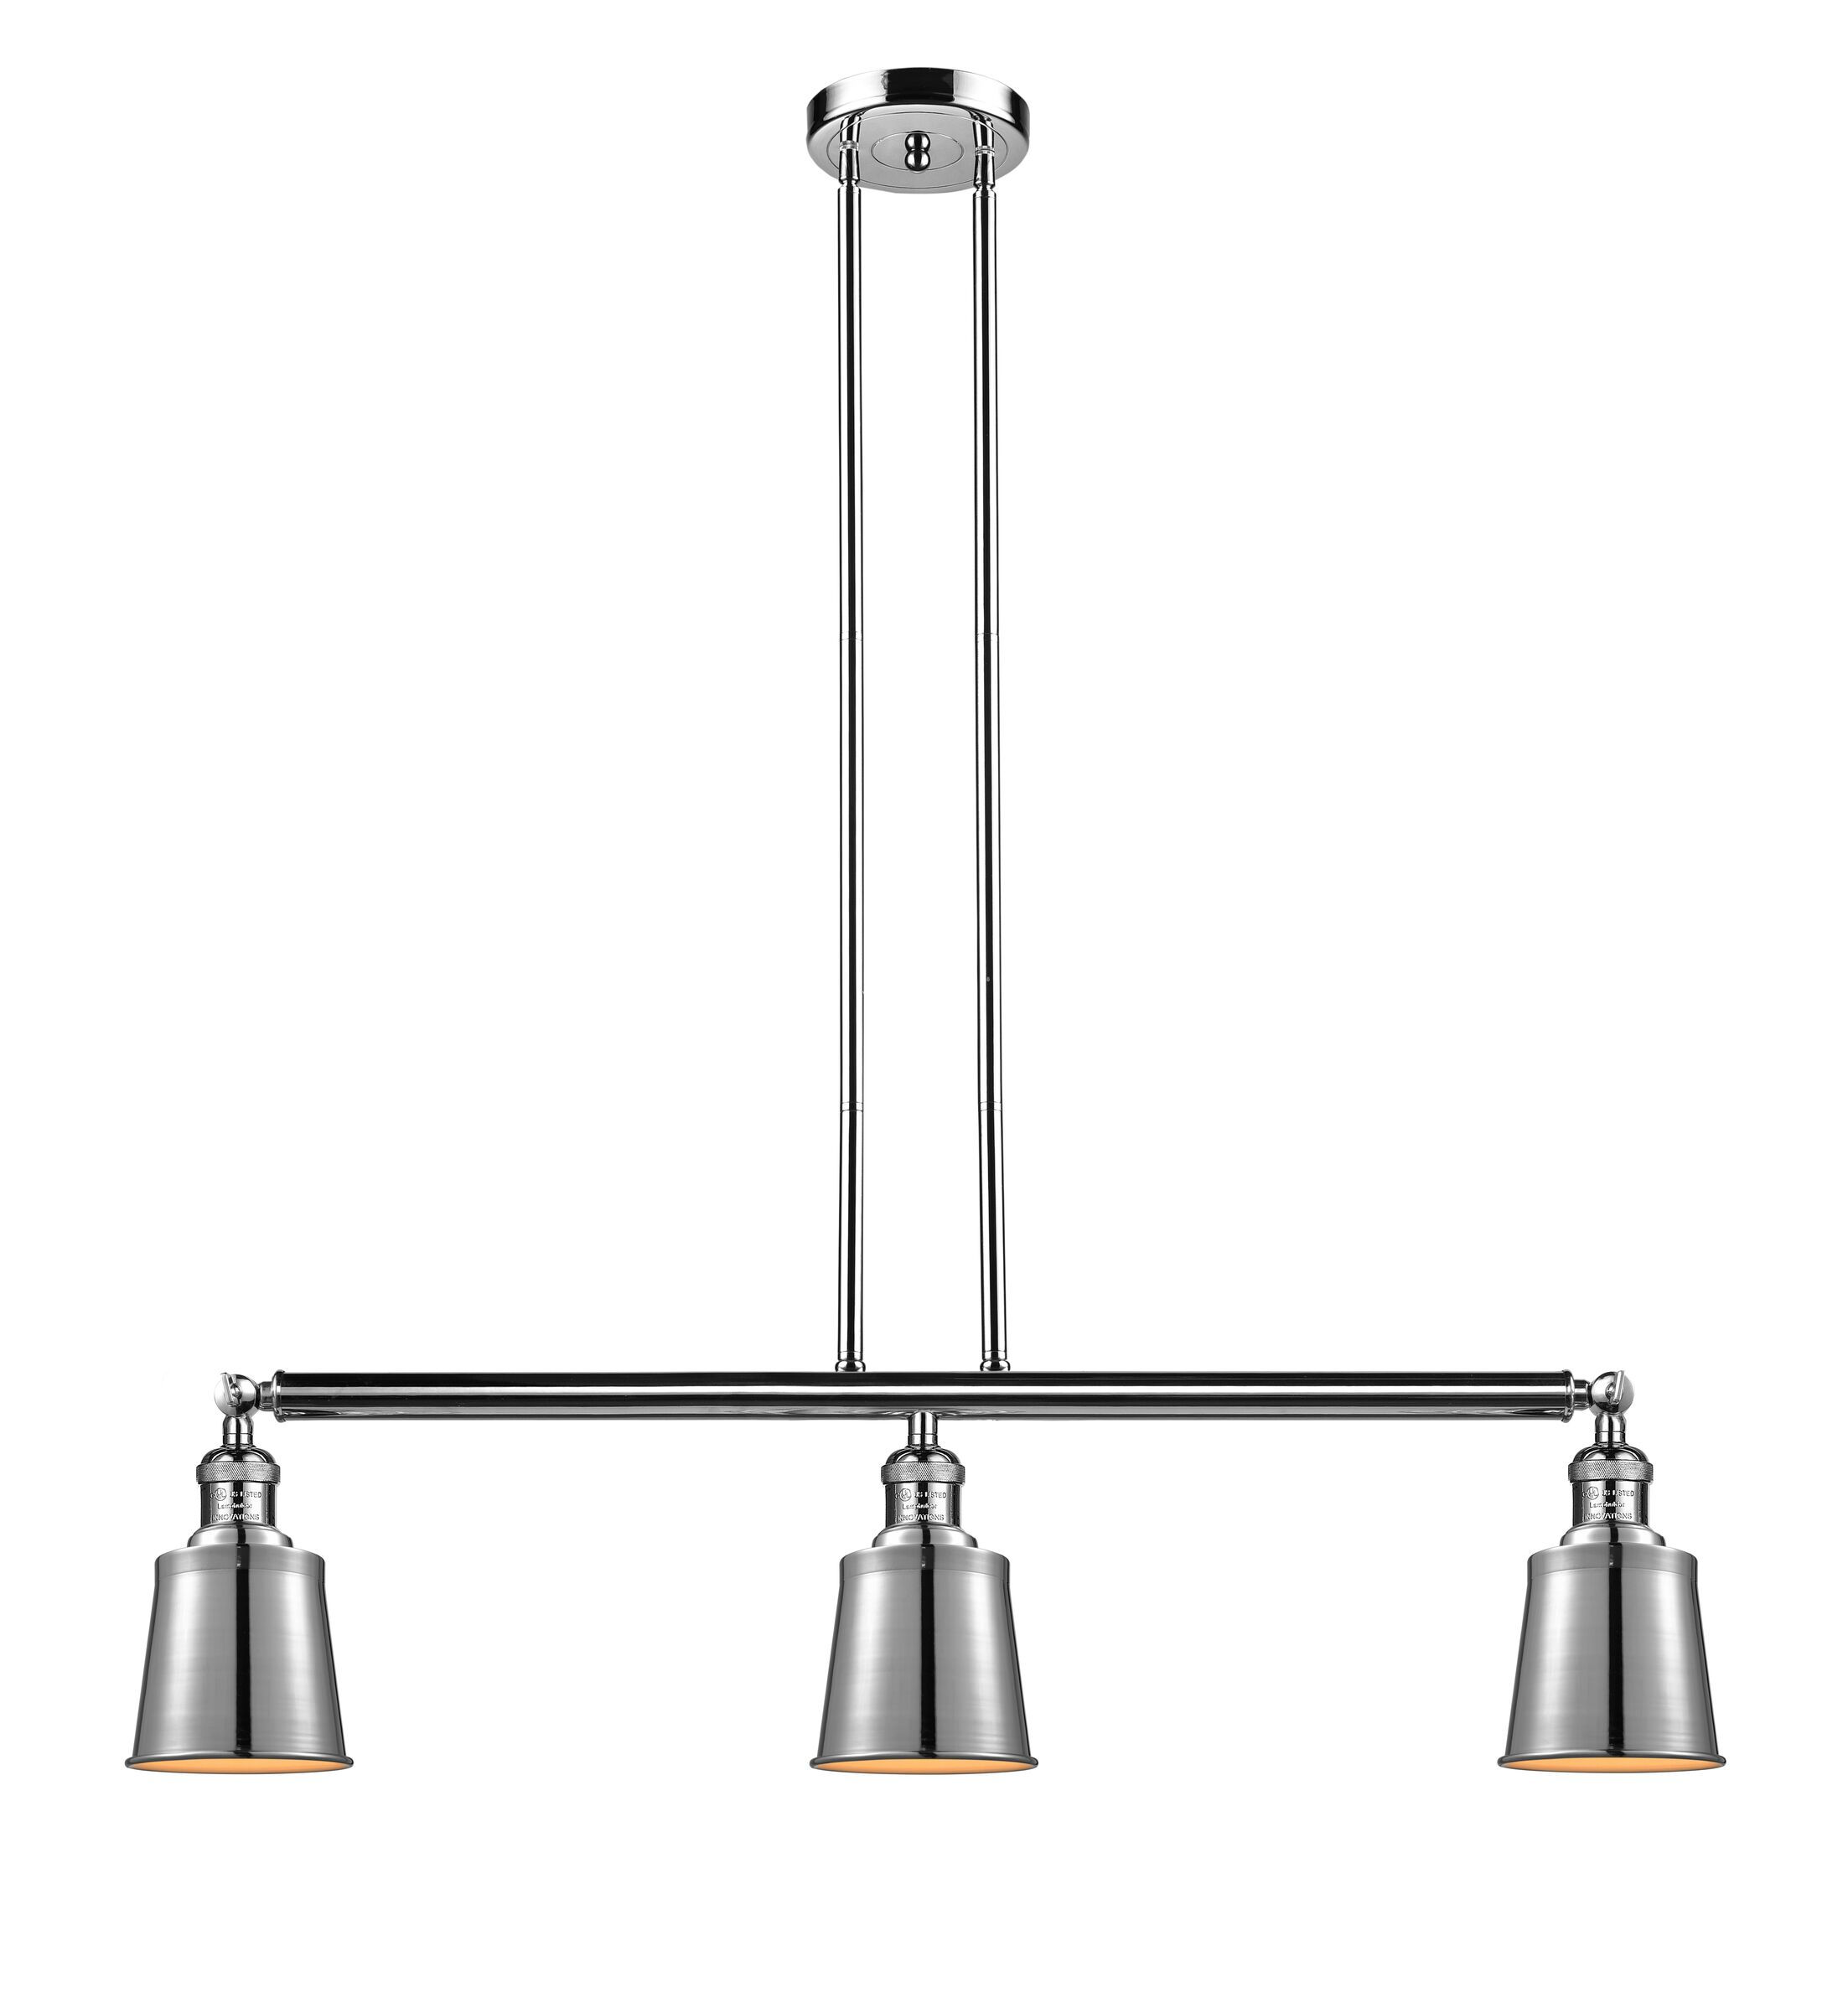 Carn 3-Light Kitchen Island Pendant Bulb Type: Incandescent, Finish: Polished Nickel